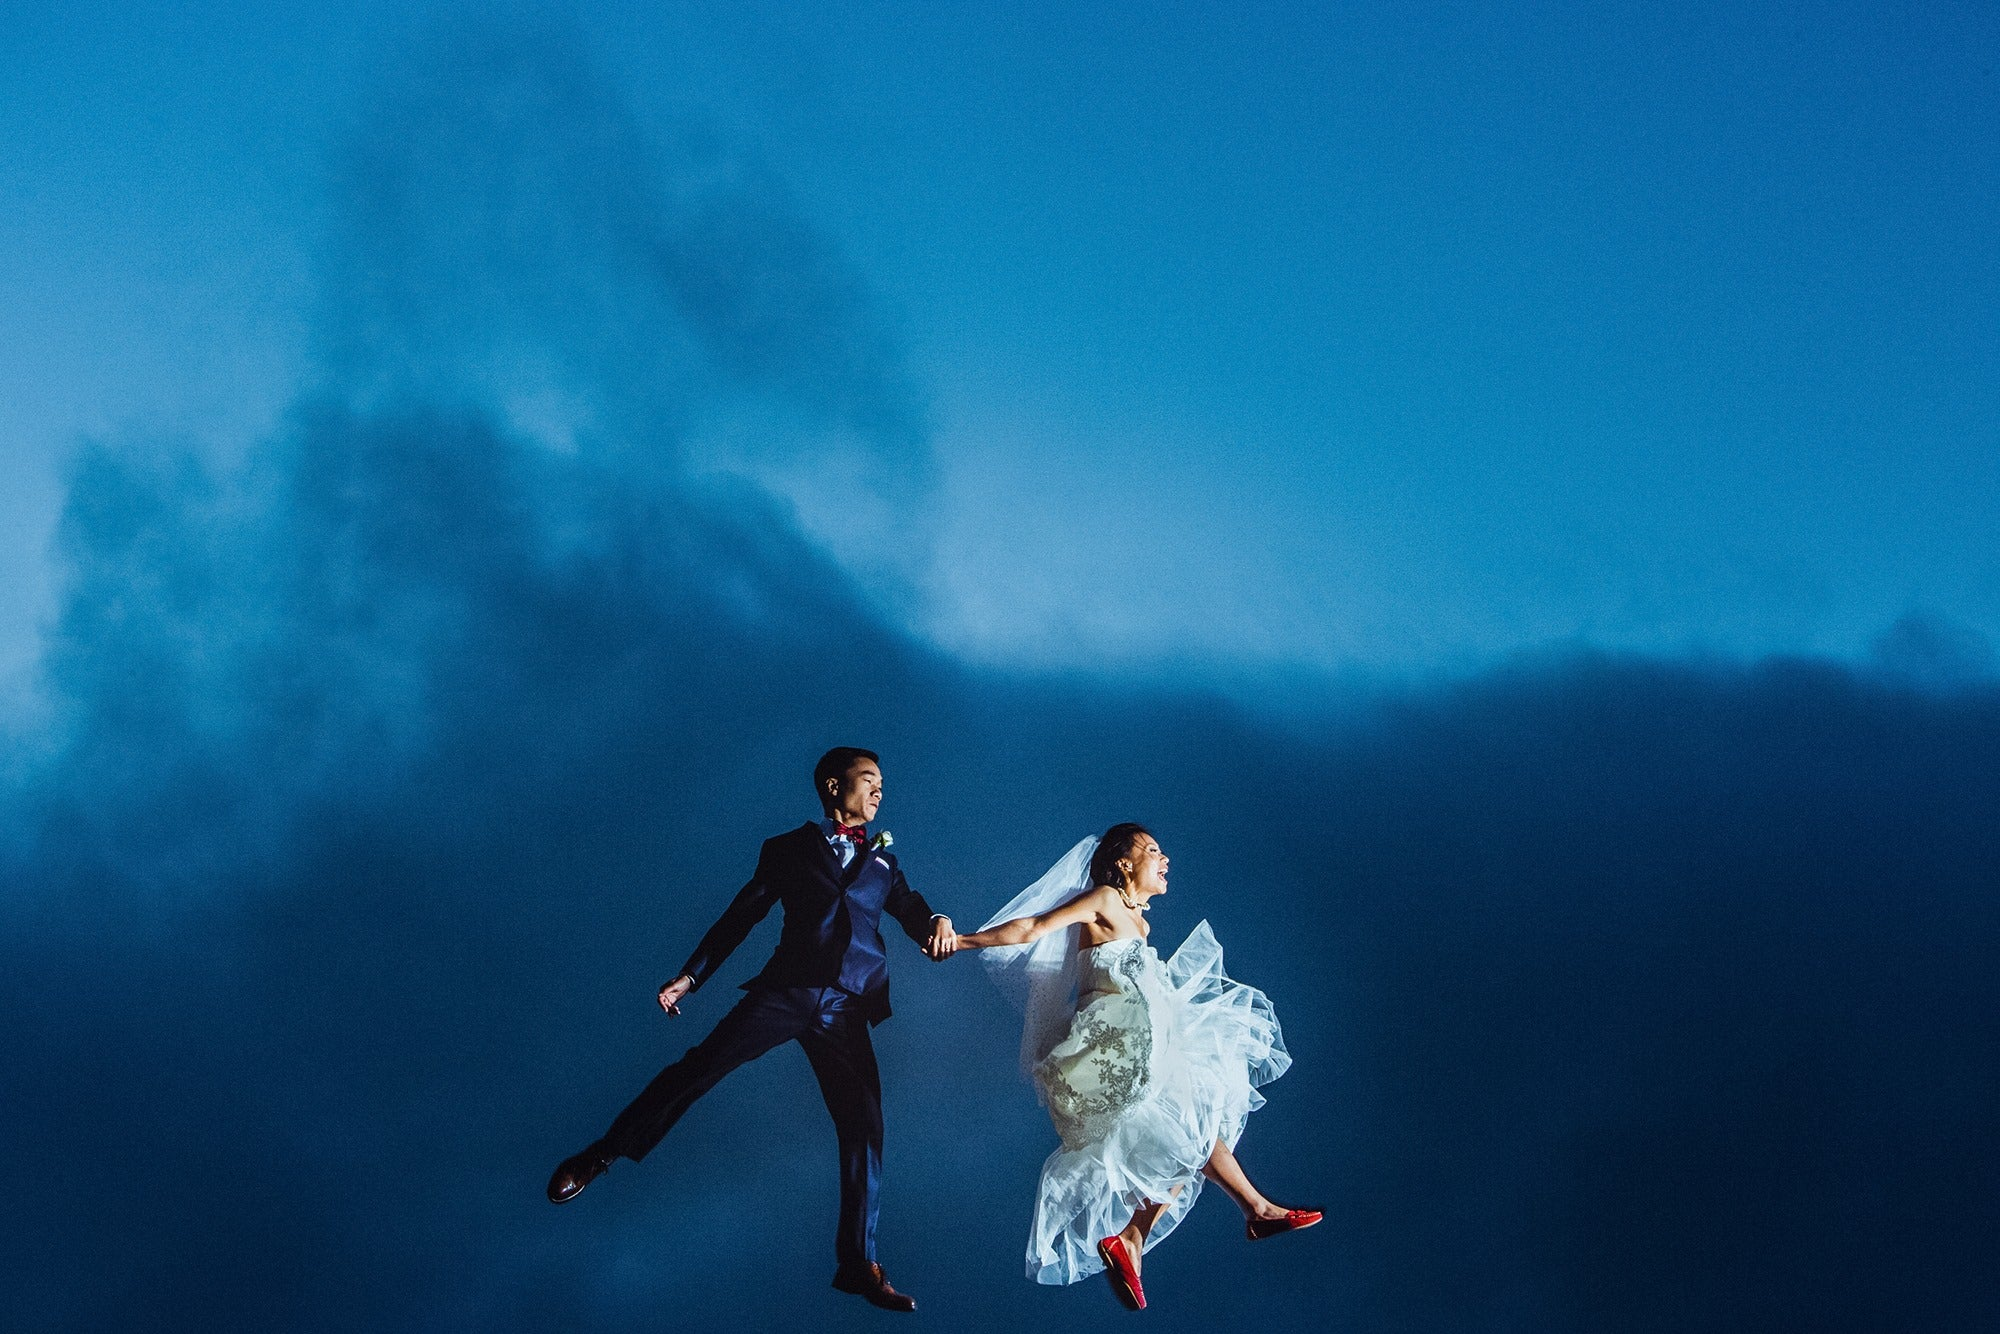 Bride and groom holding hands during a jump shot against a blue sky